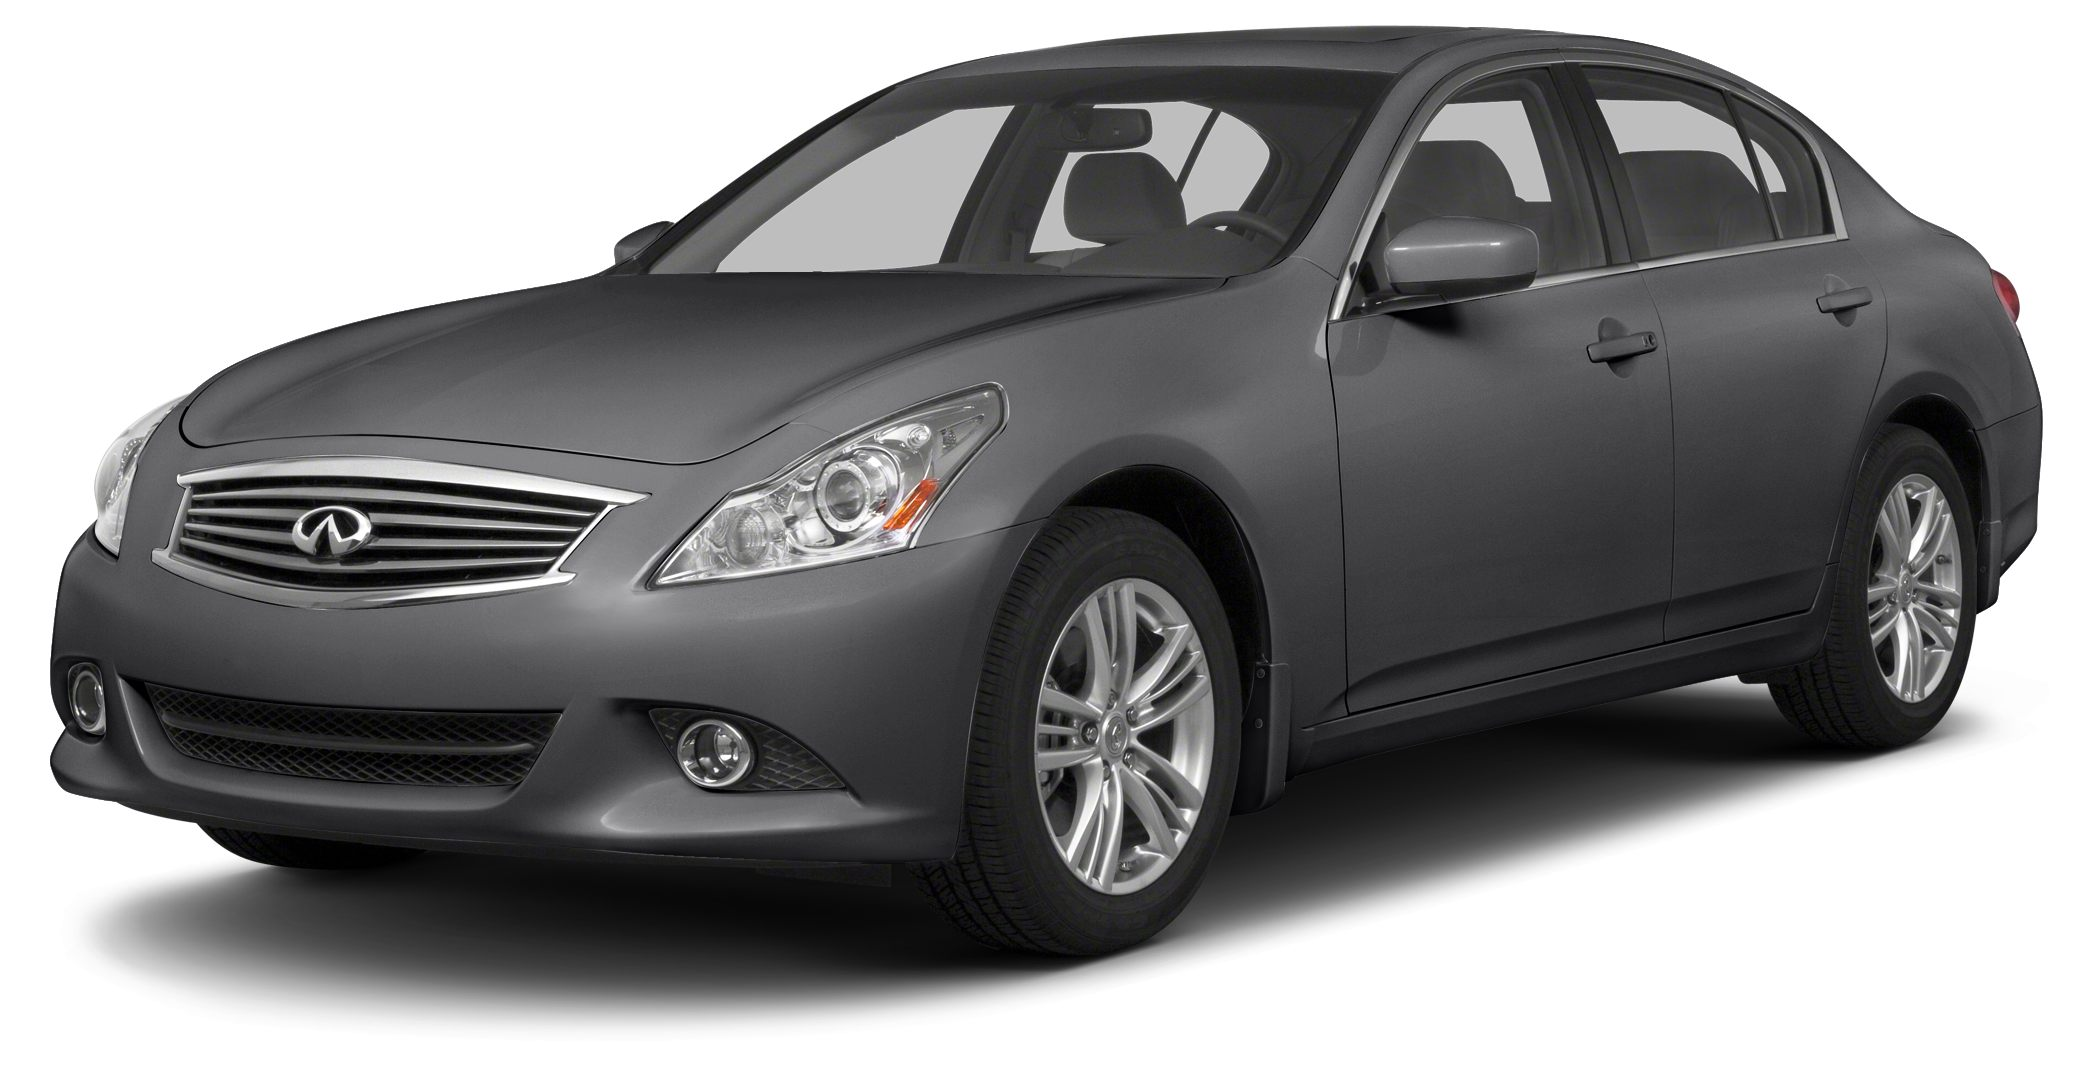 2013 Infiniti G37x Base Navigation AWD Graphite Shadow Gray on Black Heated Leather Bluetooth